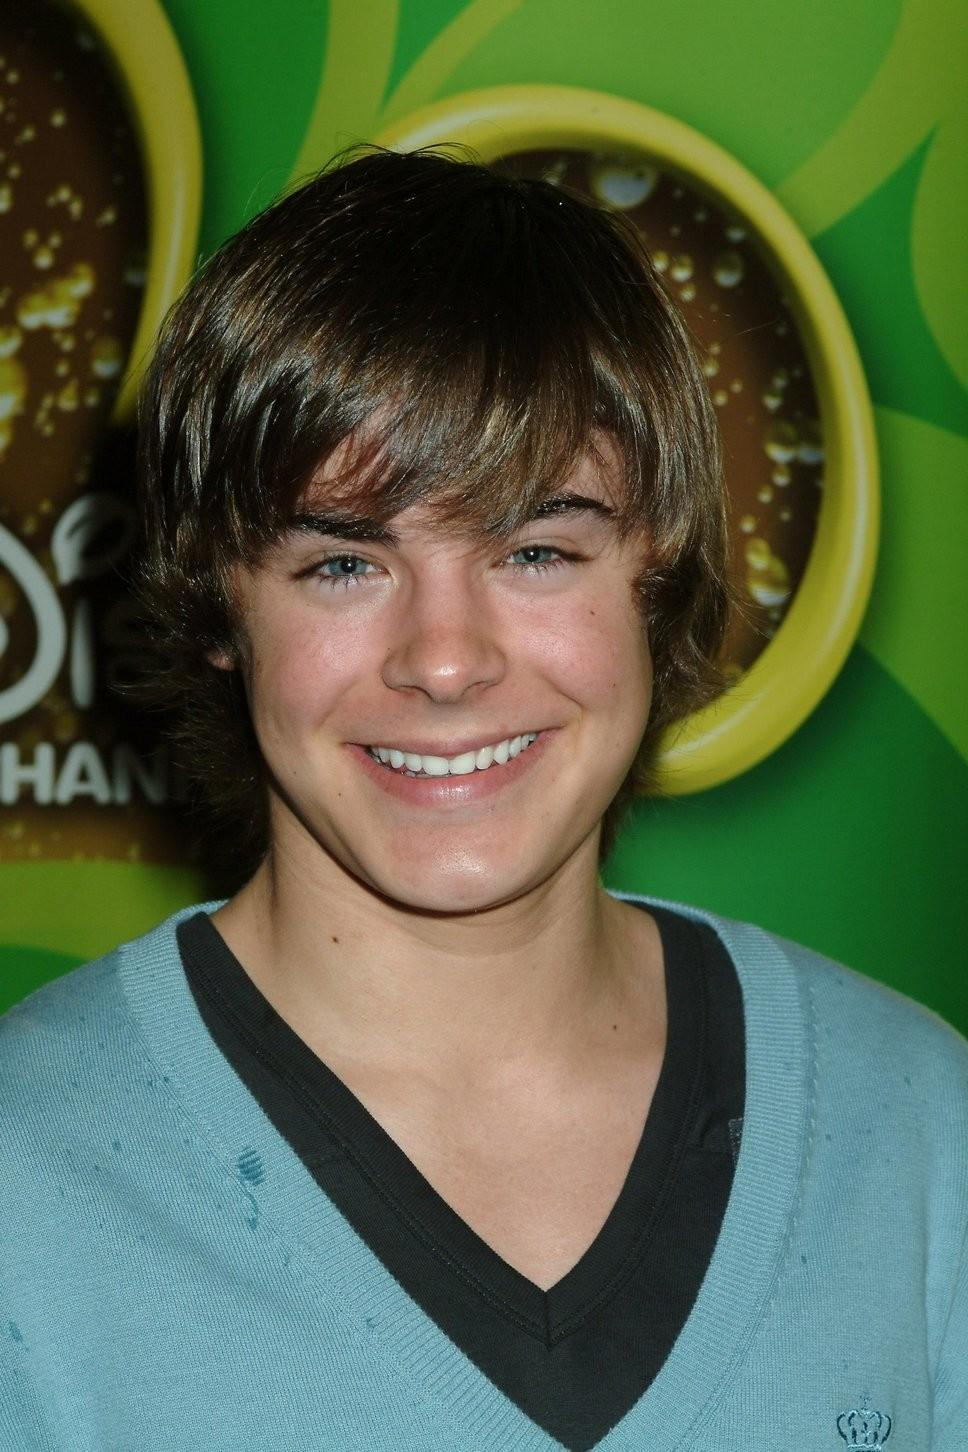 Who is zac efron dating may 2013 5